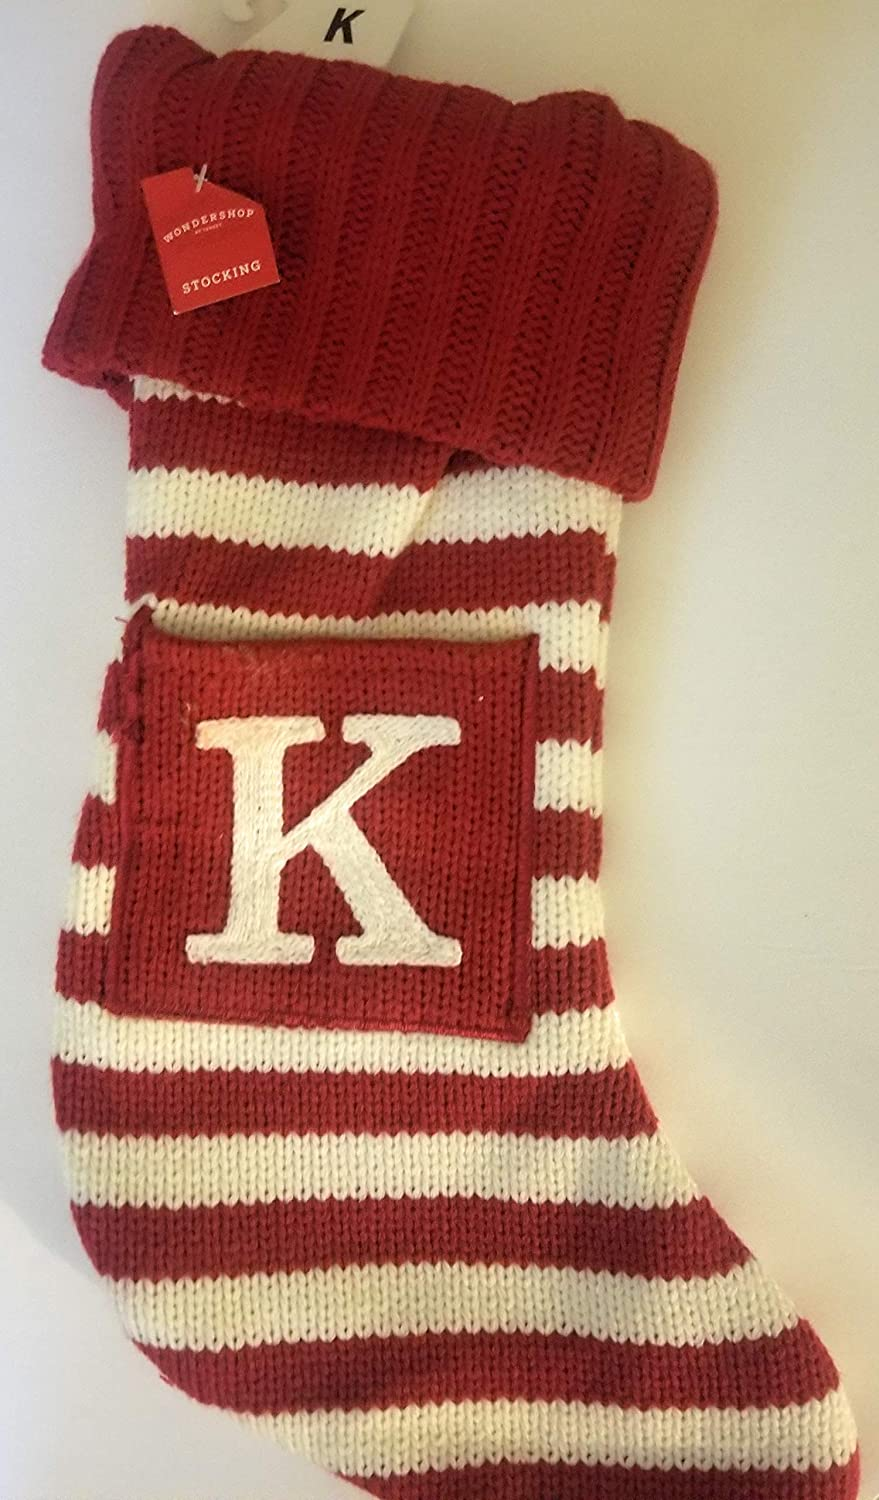 Wondershop Holiday Christmas Red White Thick Knit Monogram Stocking Letter K 19